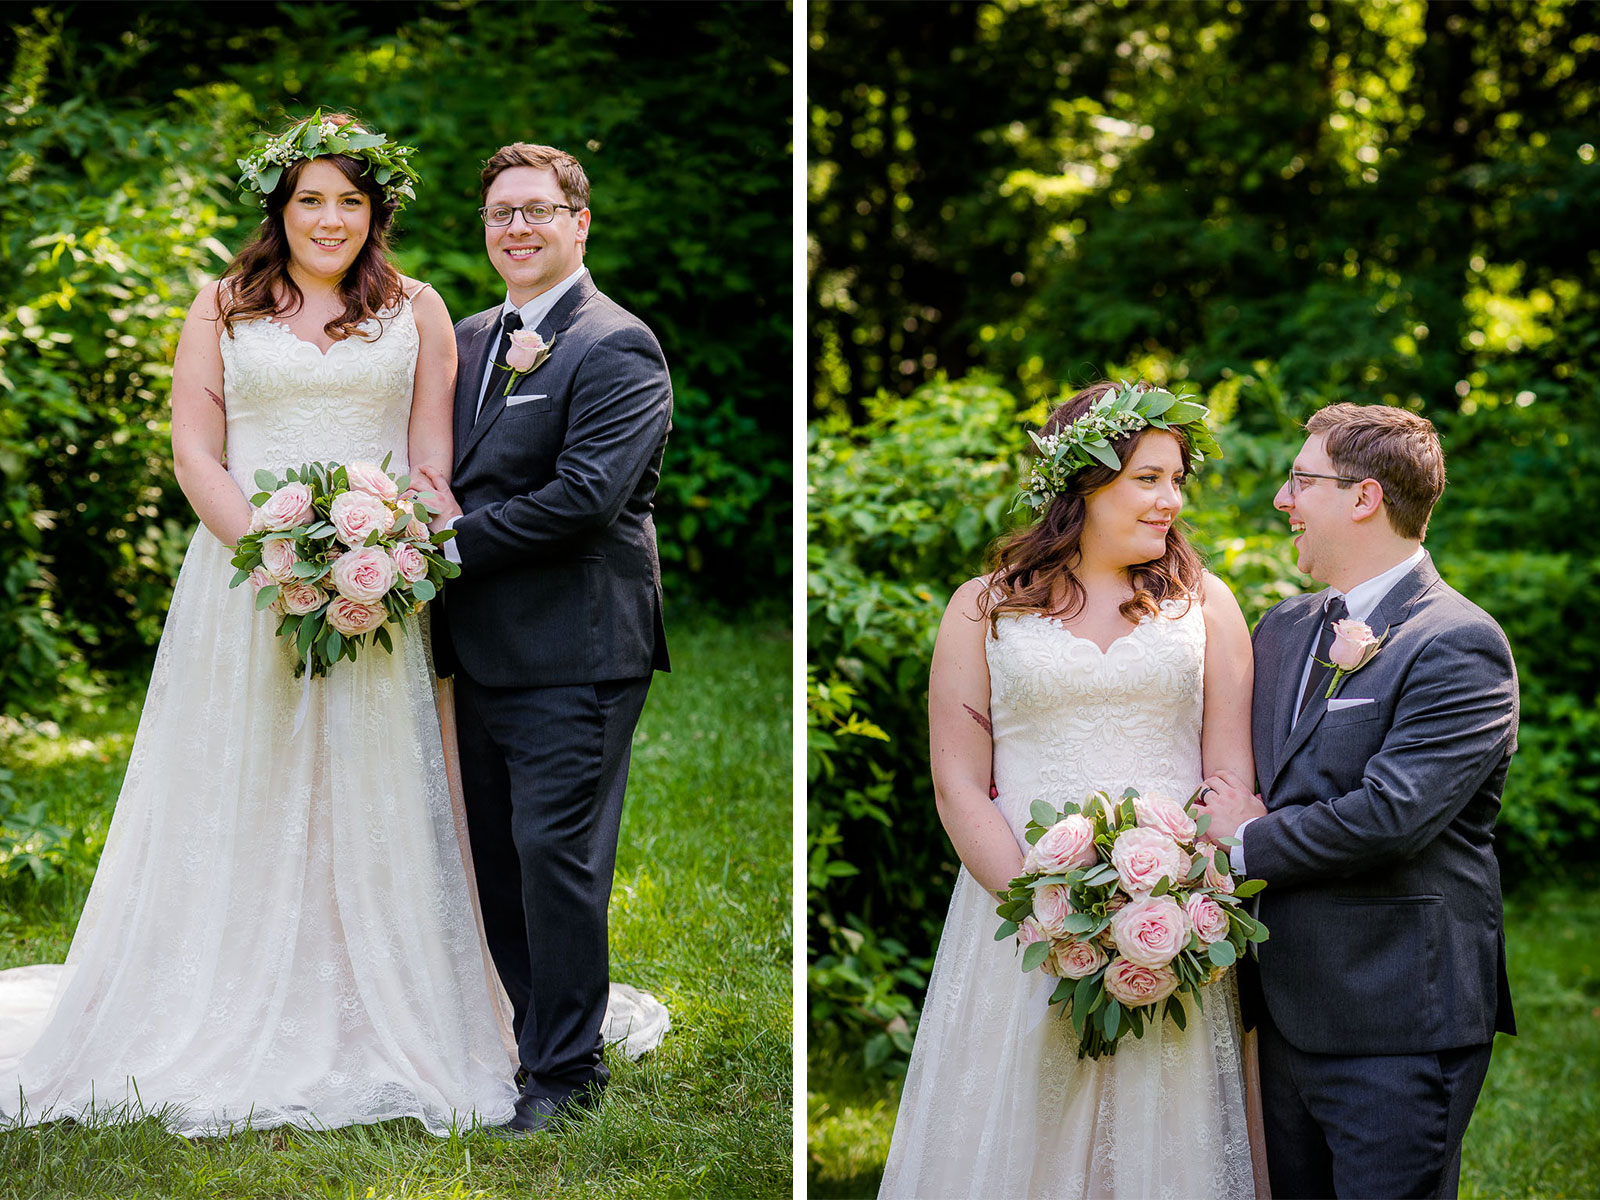 Eric_and_Christy_Photography_Blog_Wedding_Keara&Andy-29-30